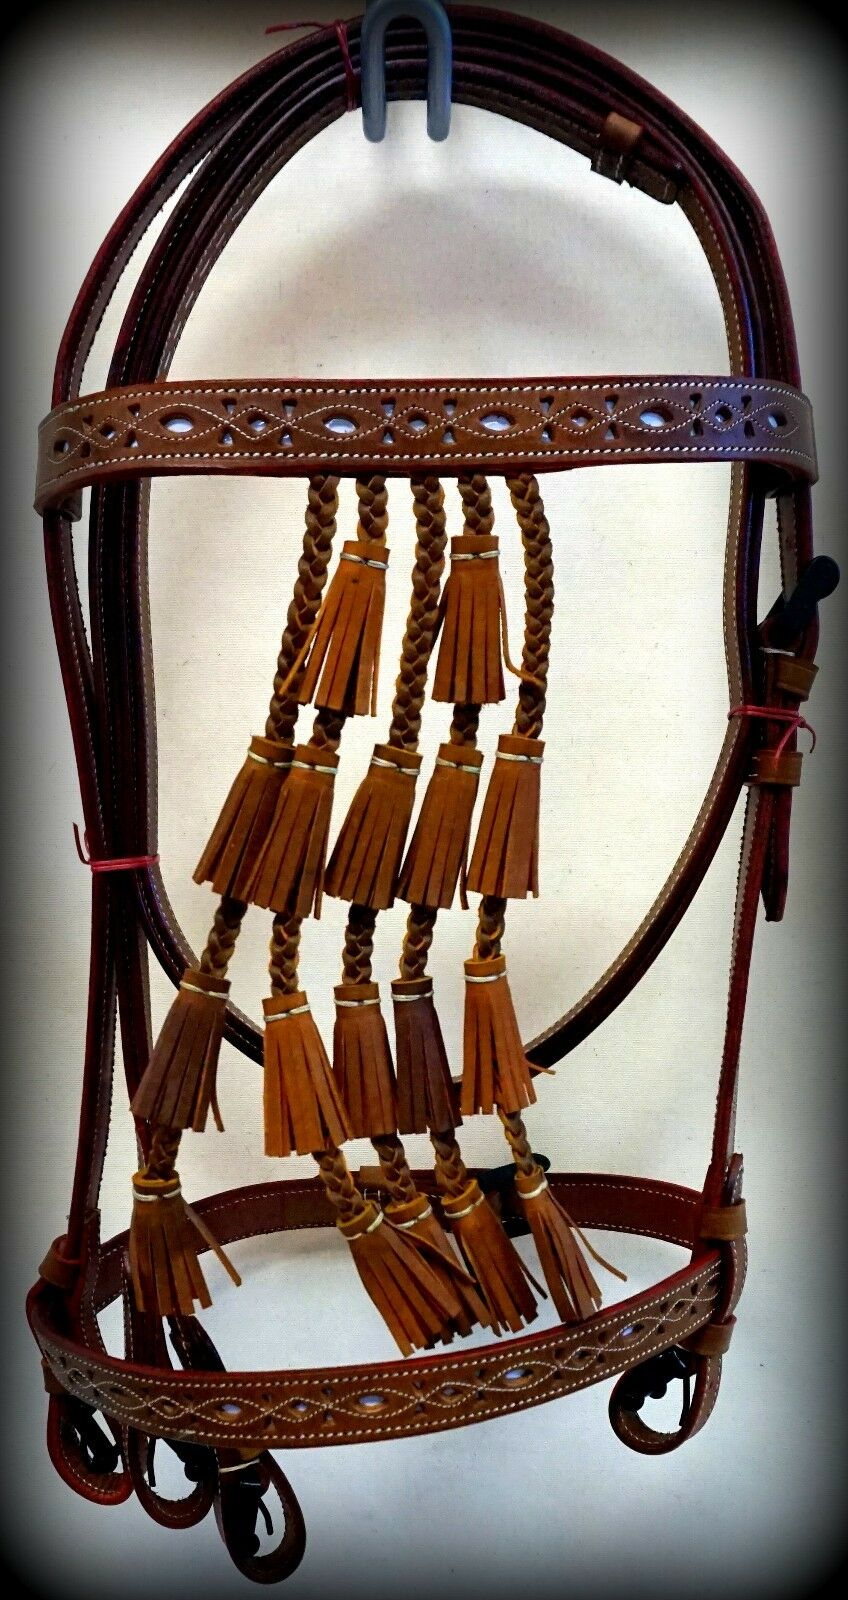 Spanish Vaqueros Bridle Headstall TAN W  White Inlay Leather Horse Bell Tassels